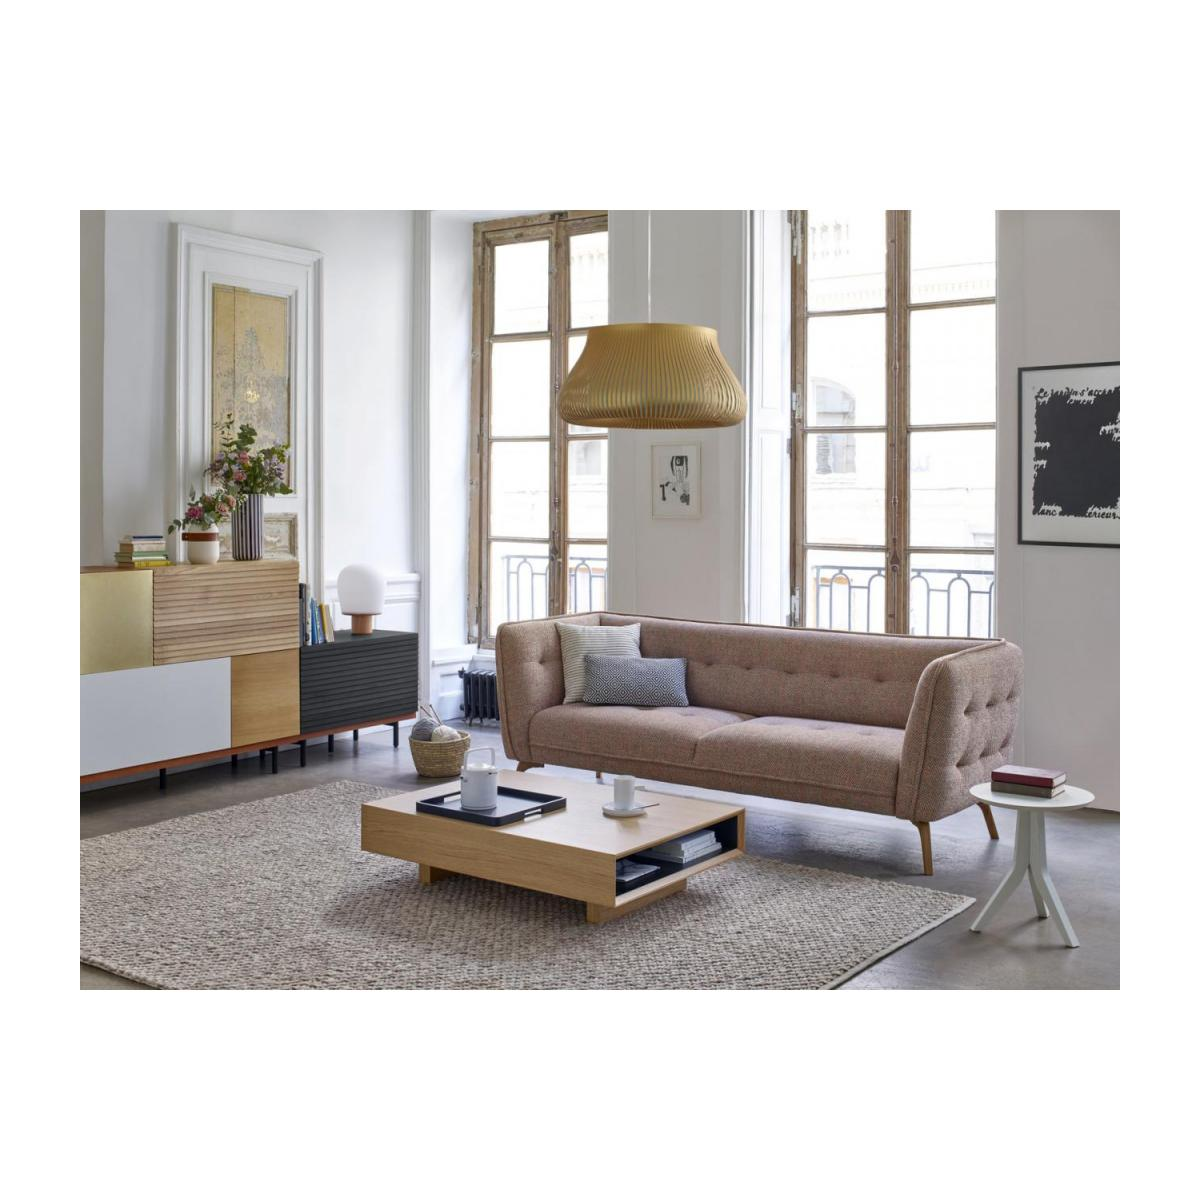 3 seater sofa in Lecce fabric, muscat and natural oak feet n°3